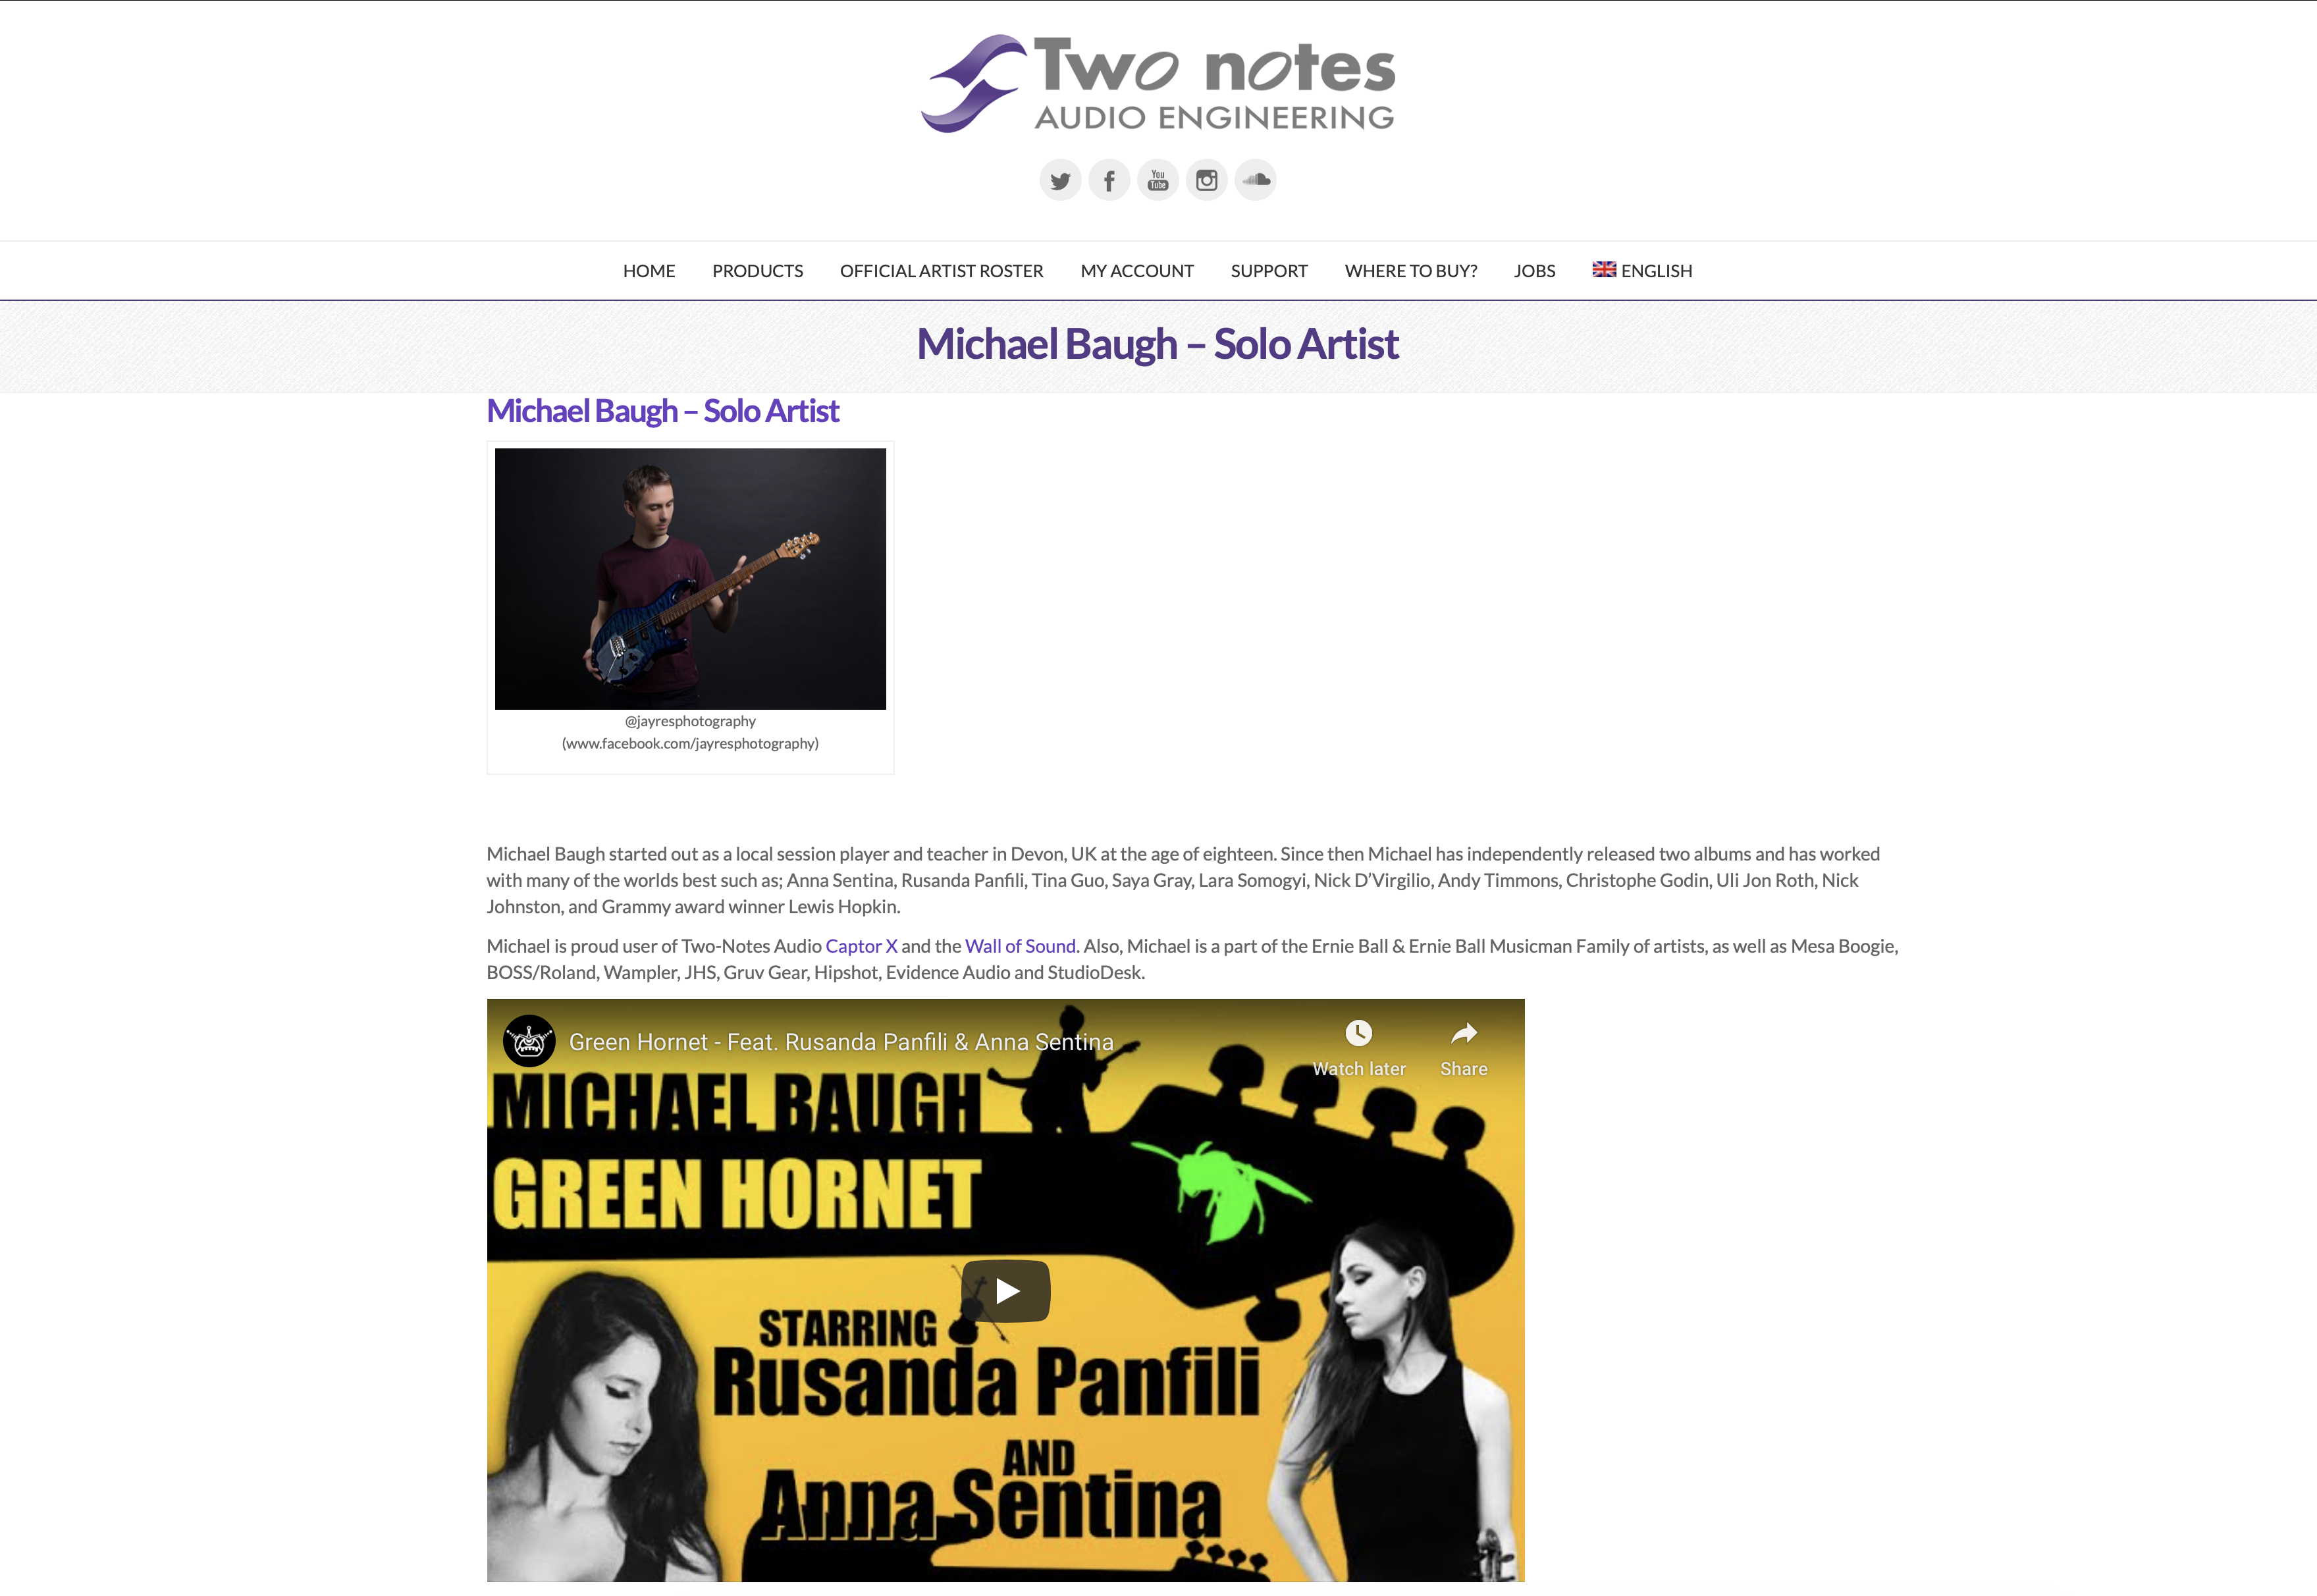 Endorsed by Two Notes Audio Engineering